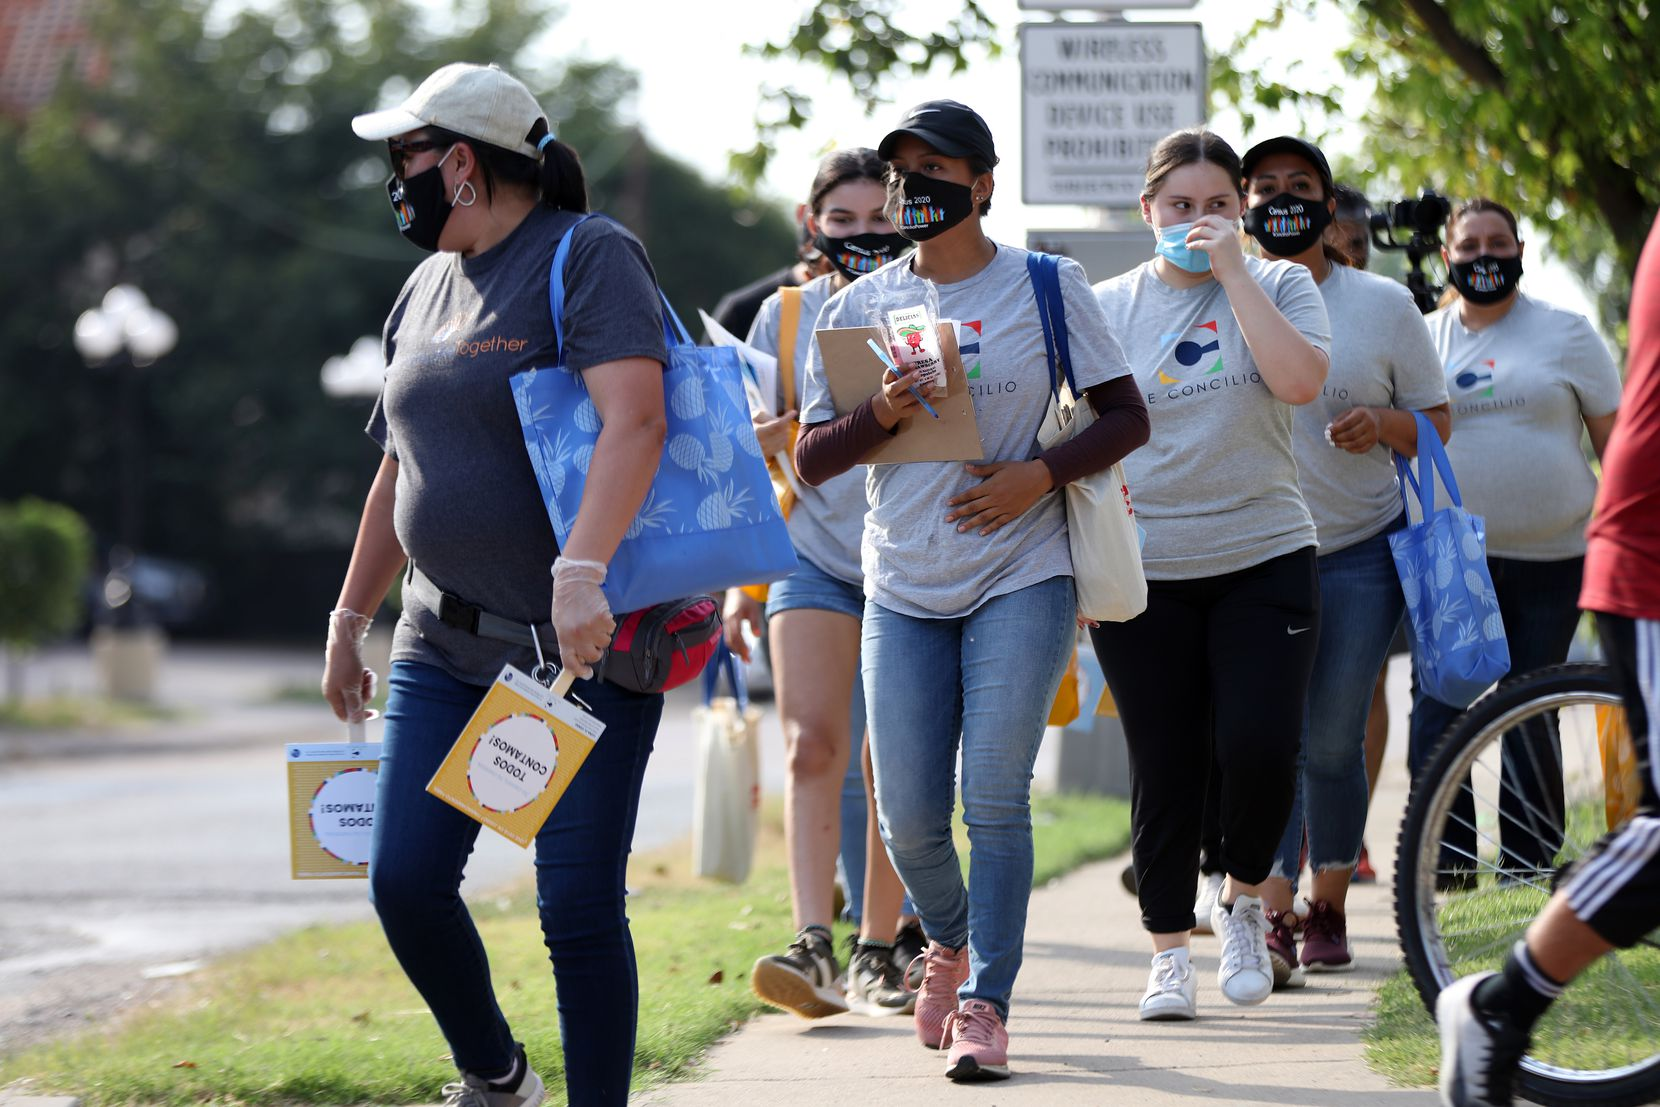 Volunteer moms with the Community Action Network walked door to door Aug. 5 inviting residents in the Bachman Lake area to fill out the 2020 Census.